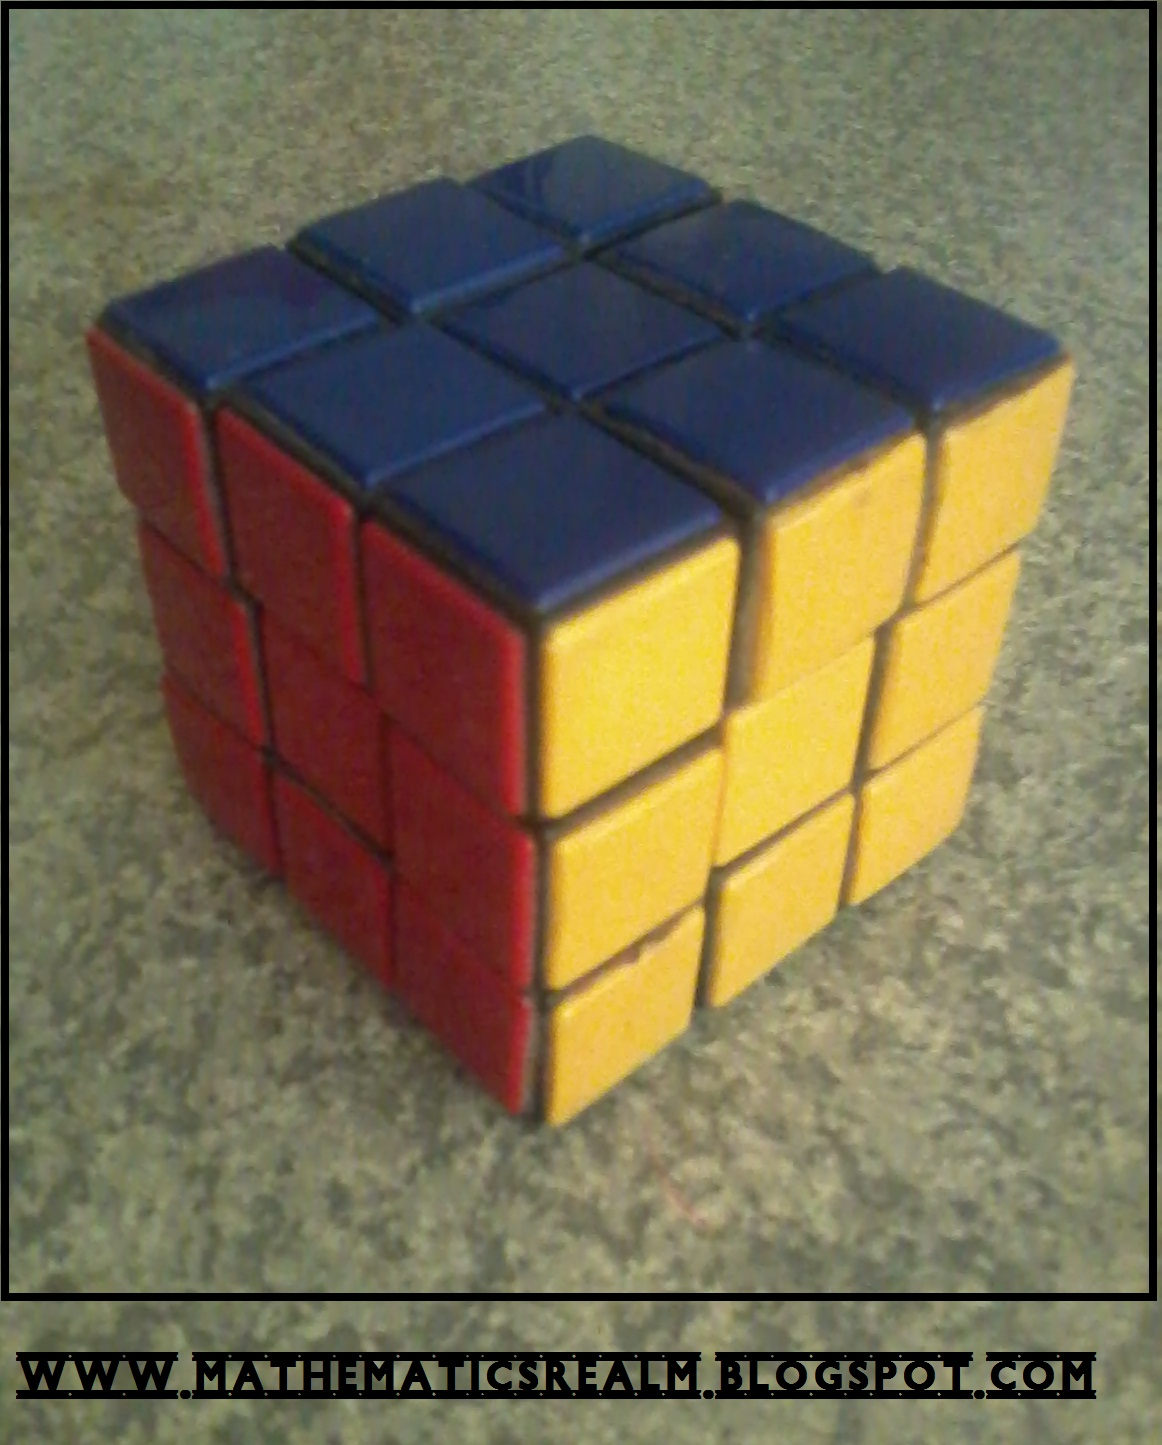 Cube Meaning a 3x3x3 Cube Meaning There